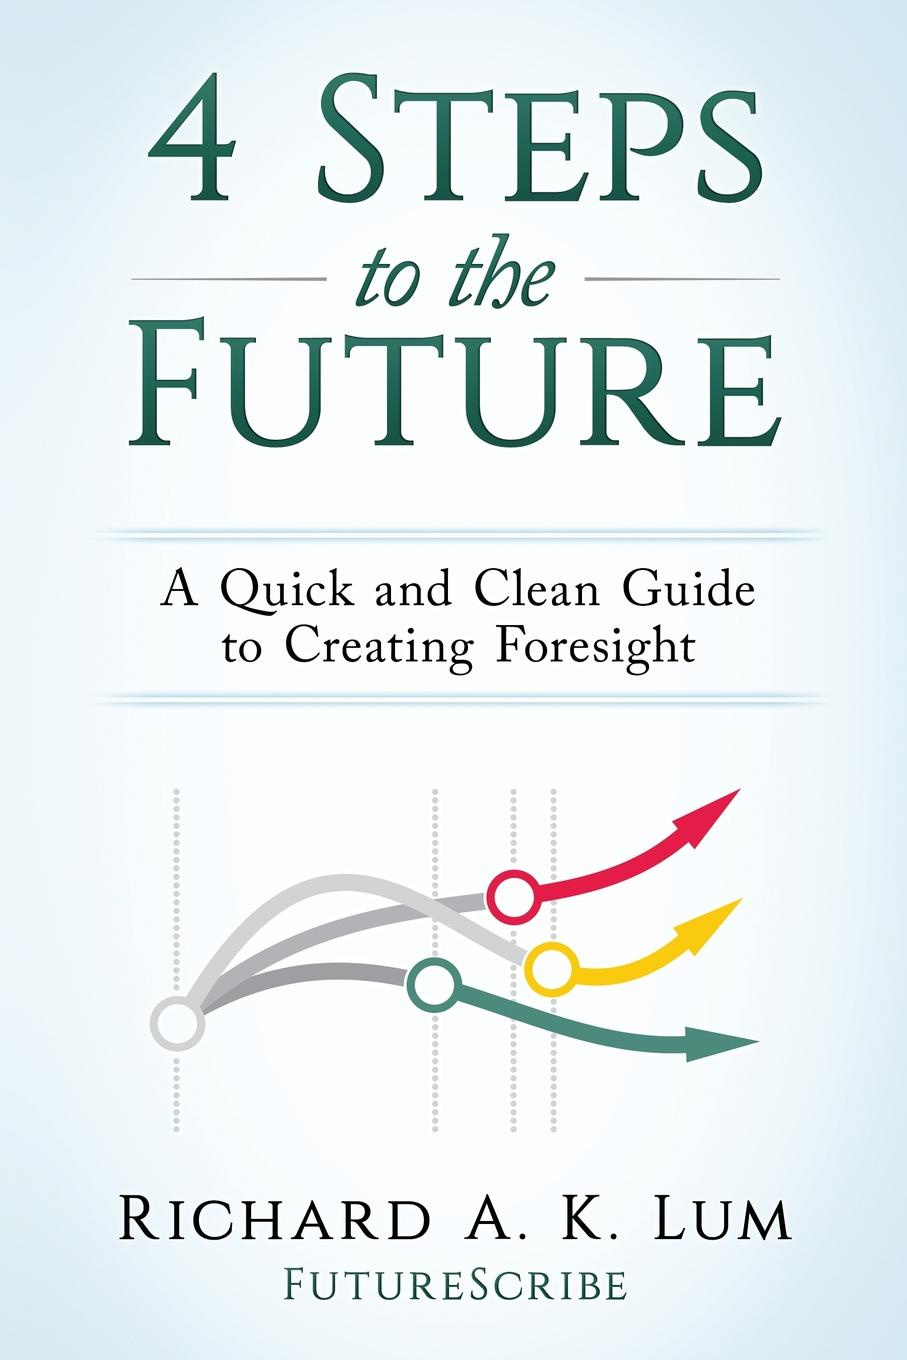 Richard A. K. Lum 4 Steps to the Future. A Quick and Clean Guide to Creating Foresight